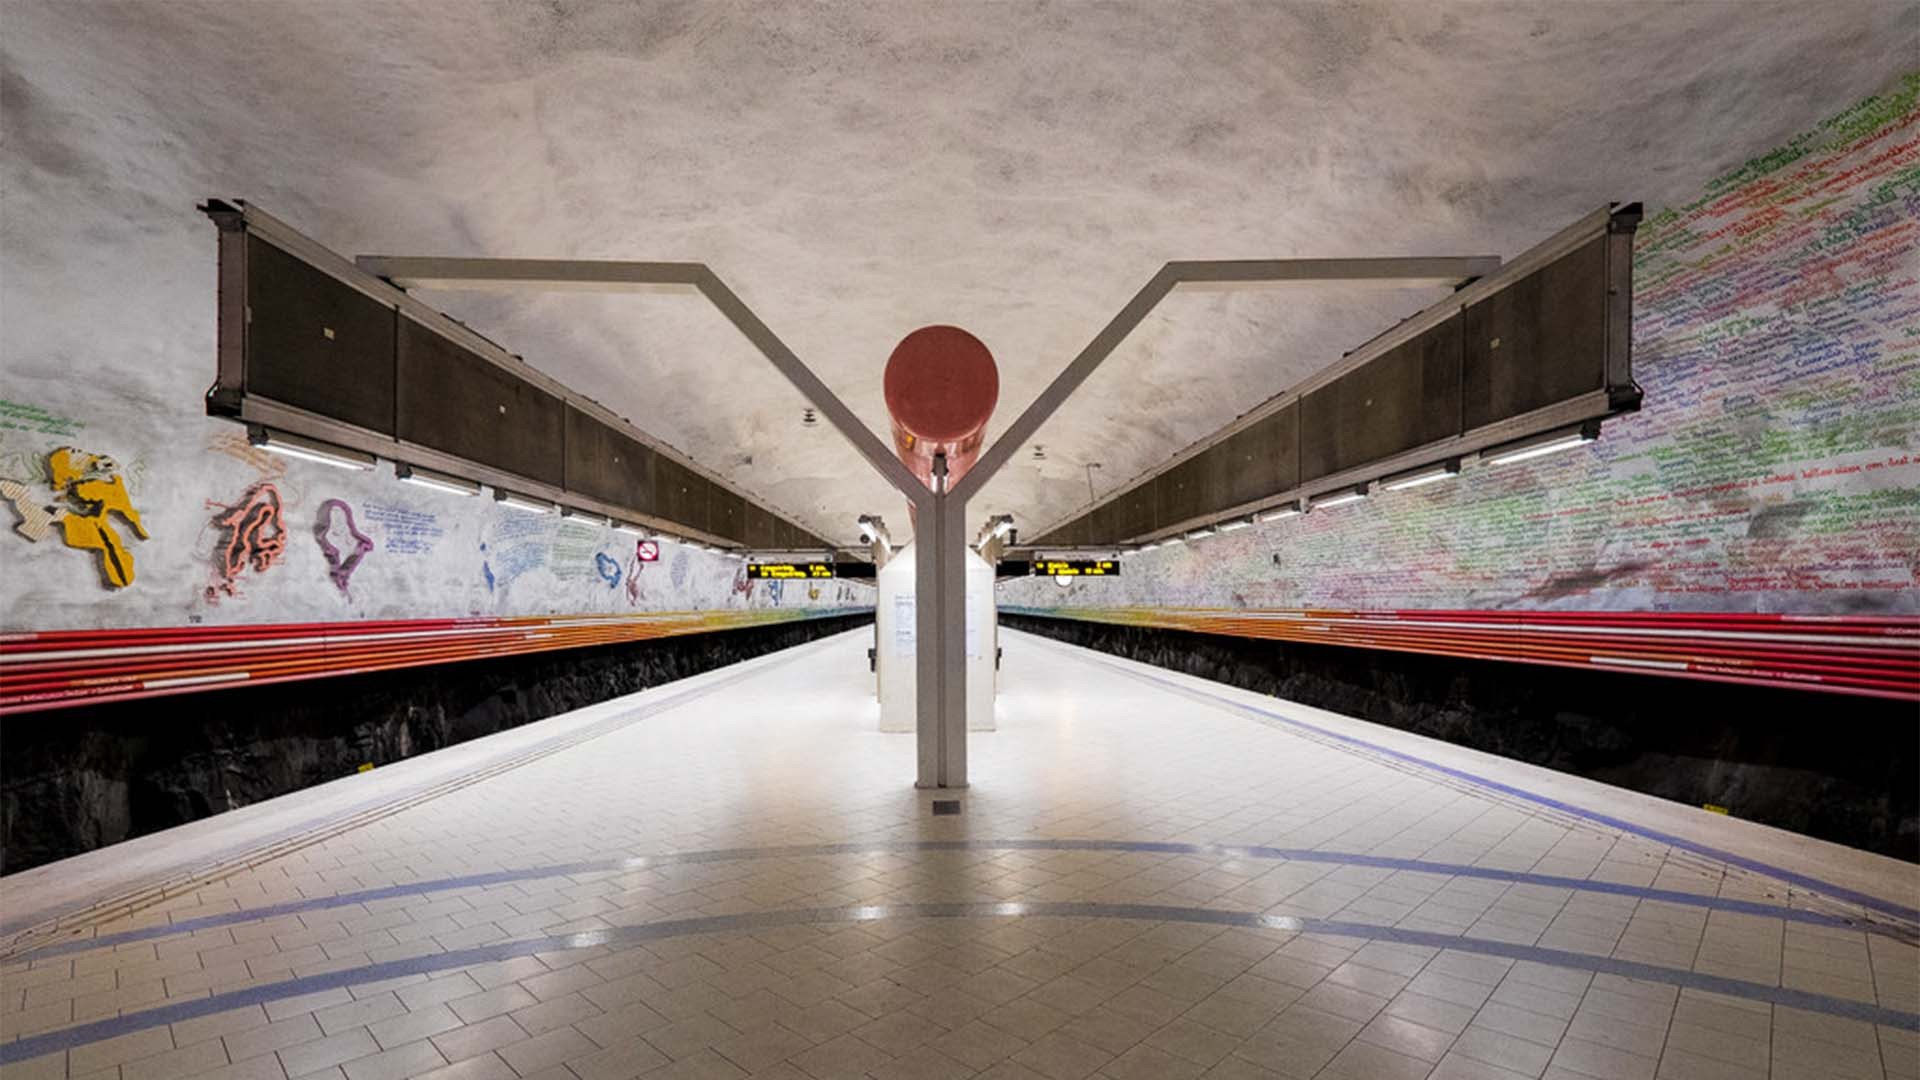 Wall murals at Rissne metro station, Stockholm